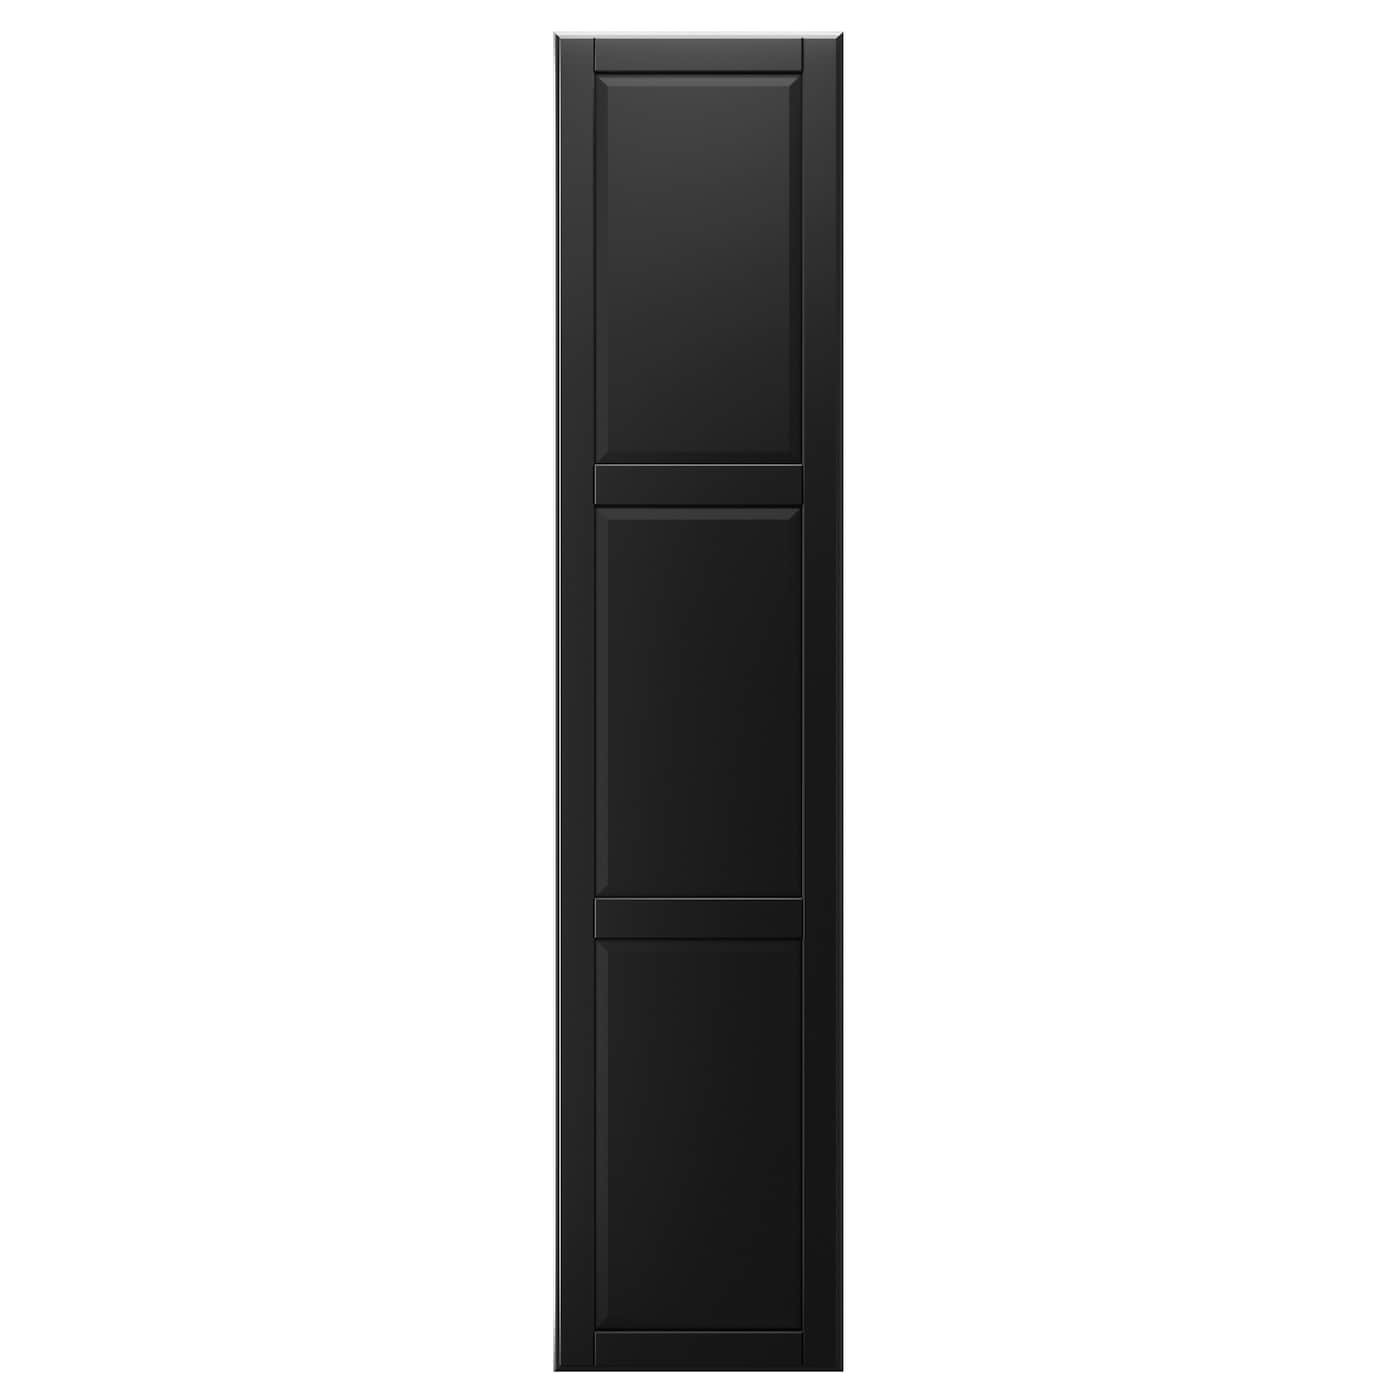 undredal porte avec charni res noir 50x229 cm ikea. Black Bedroom Furniture Sets. Home Design Ideas